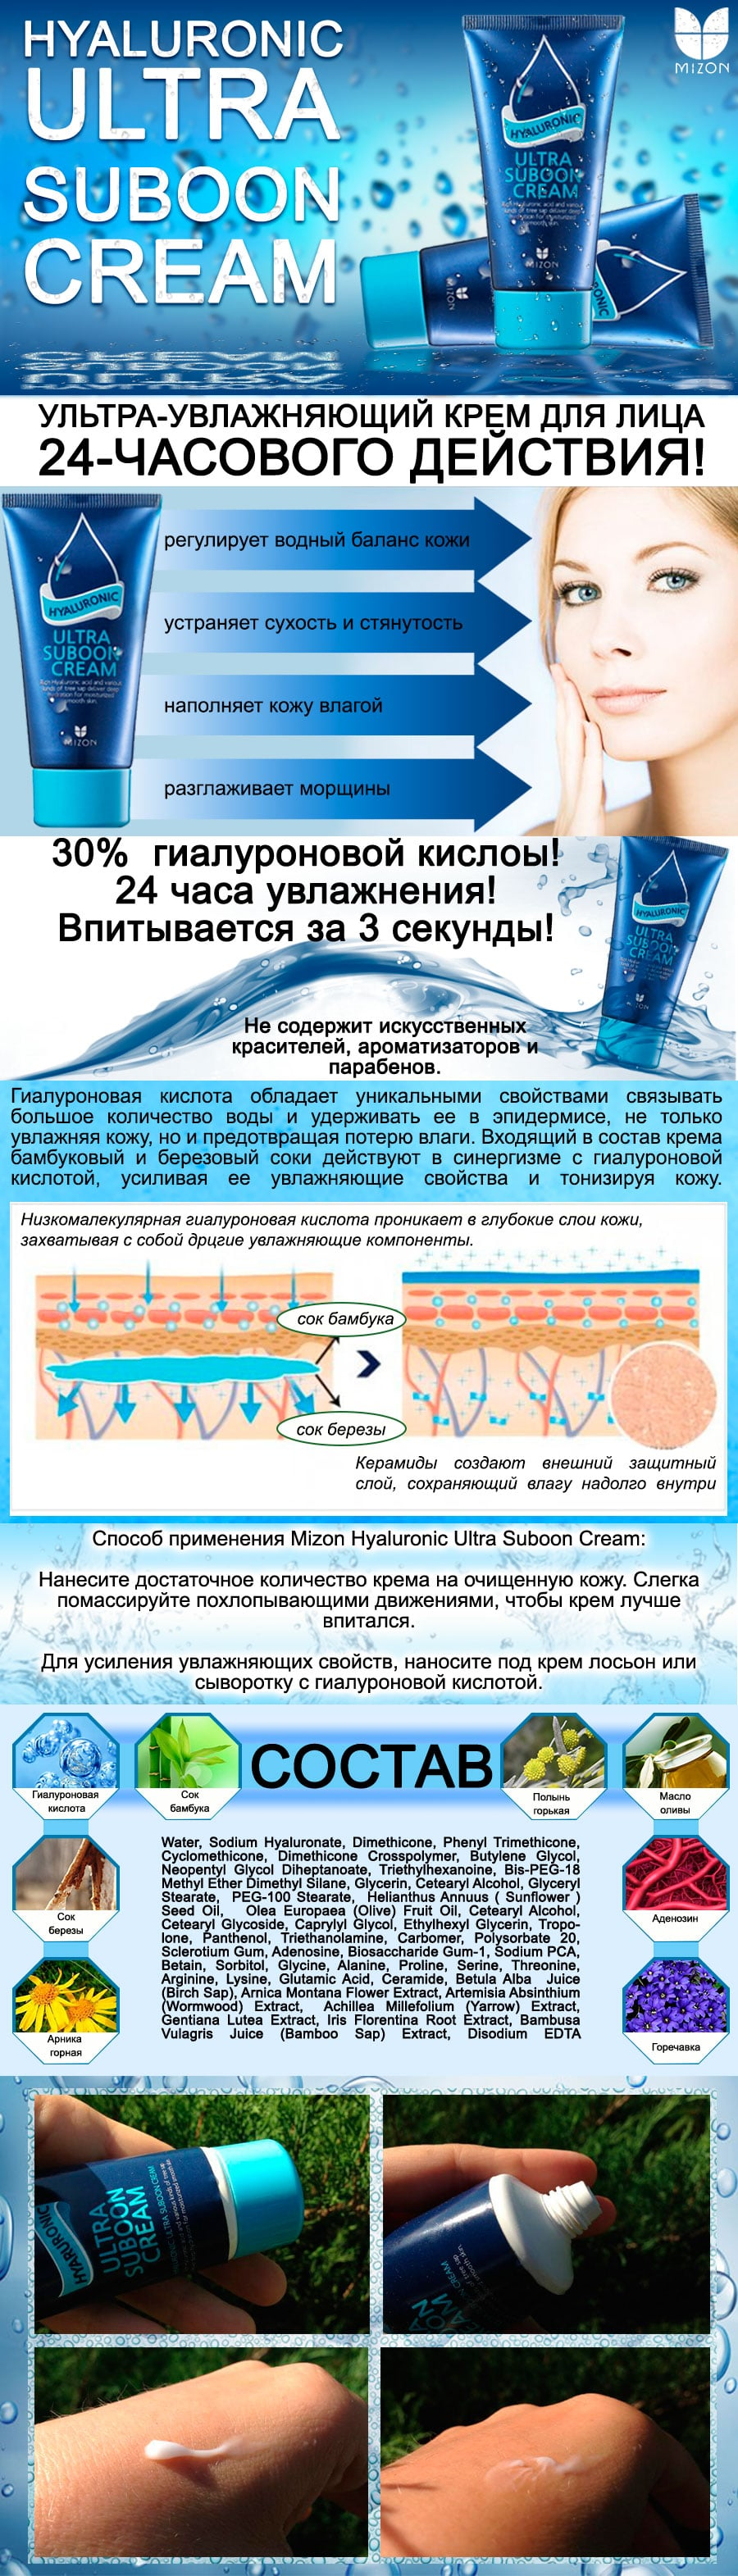 Hyaluronic-Ultra-Suboon-Cream-[Mizon]-min